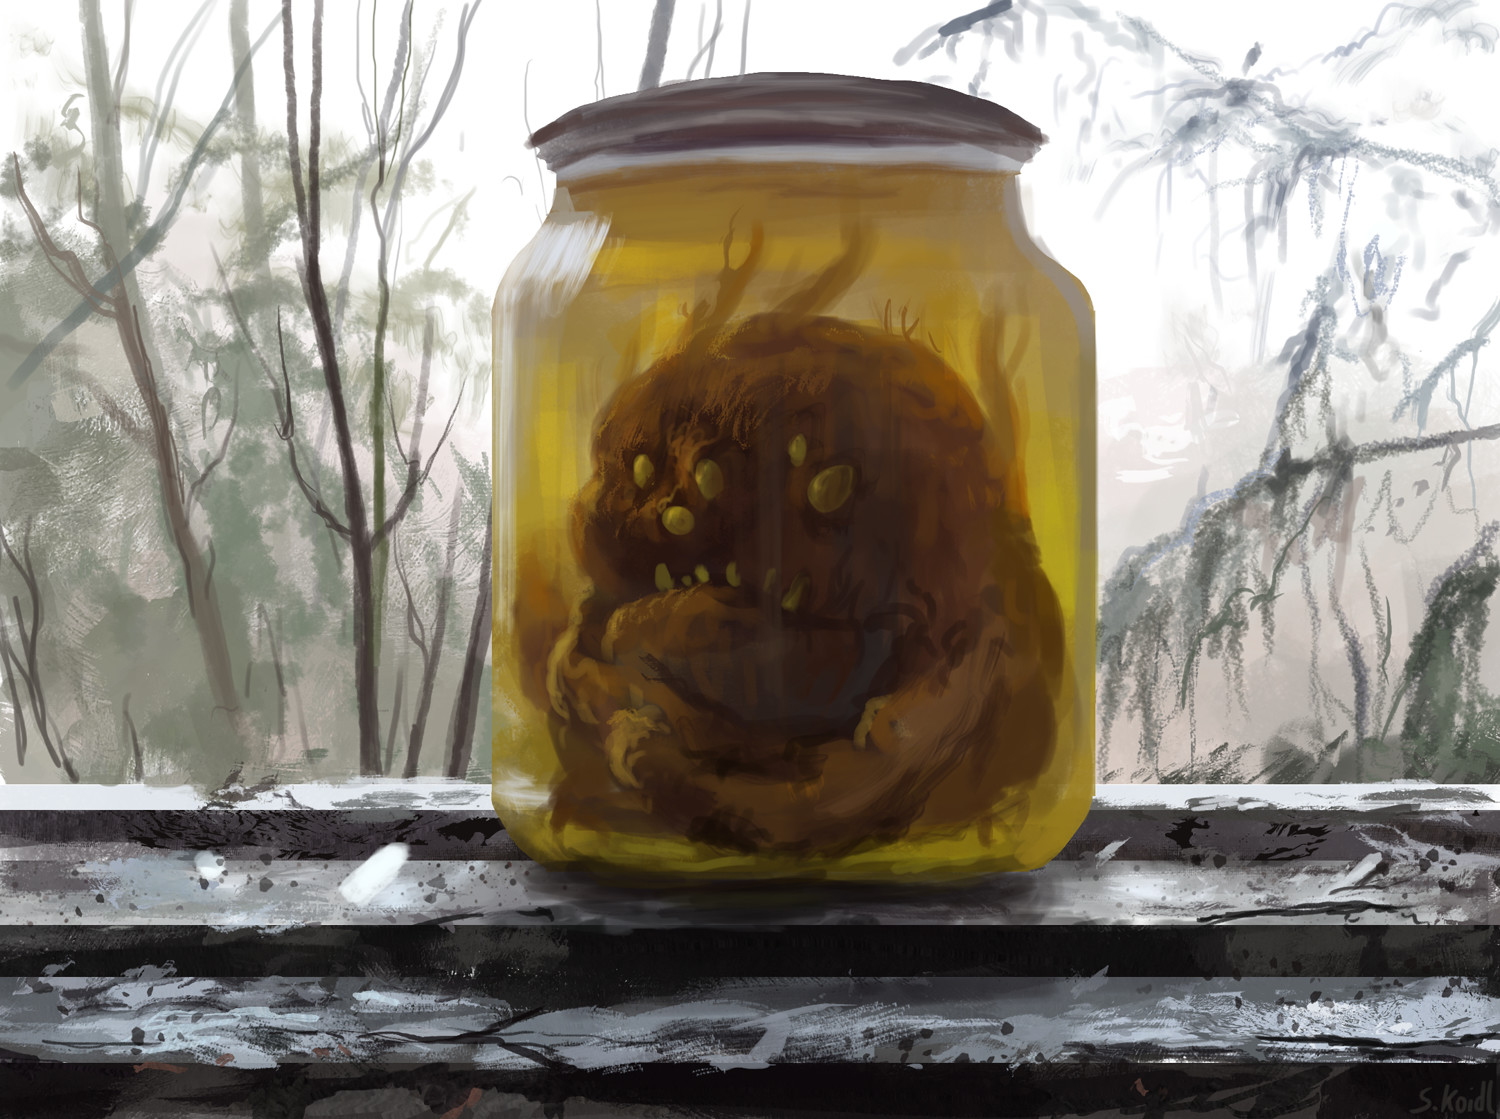 Caught in a jar